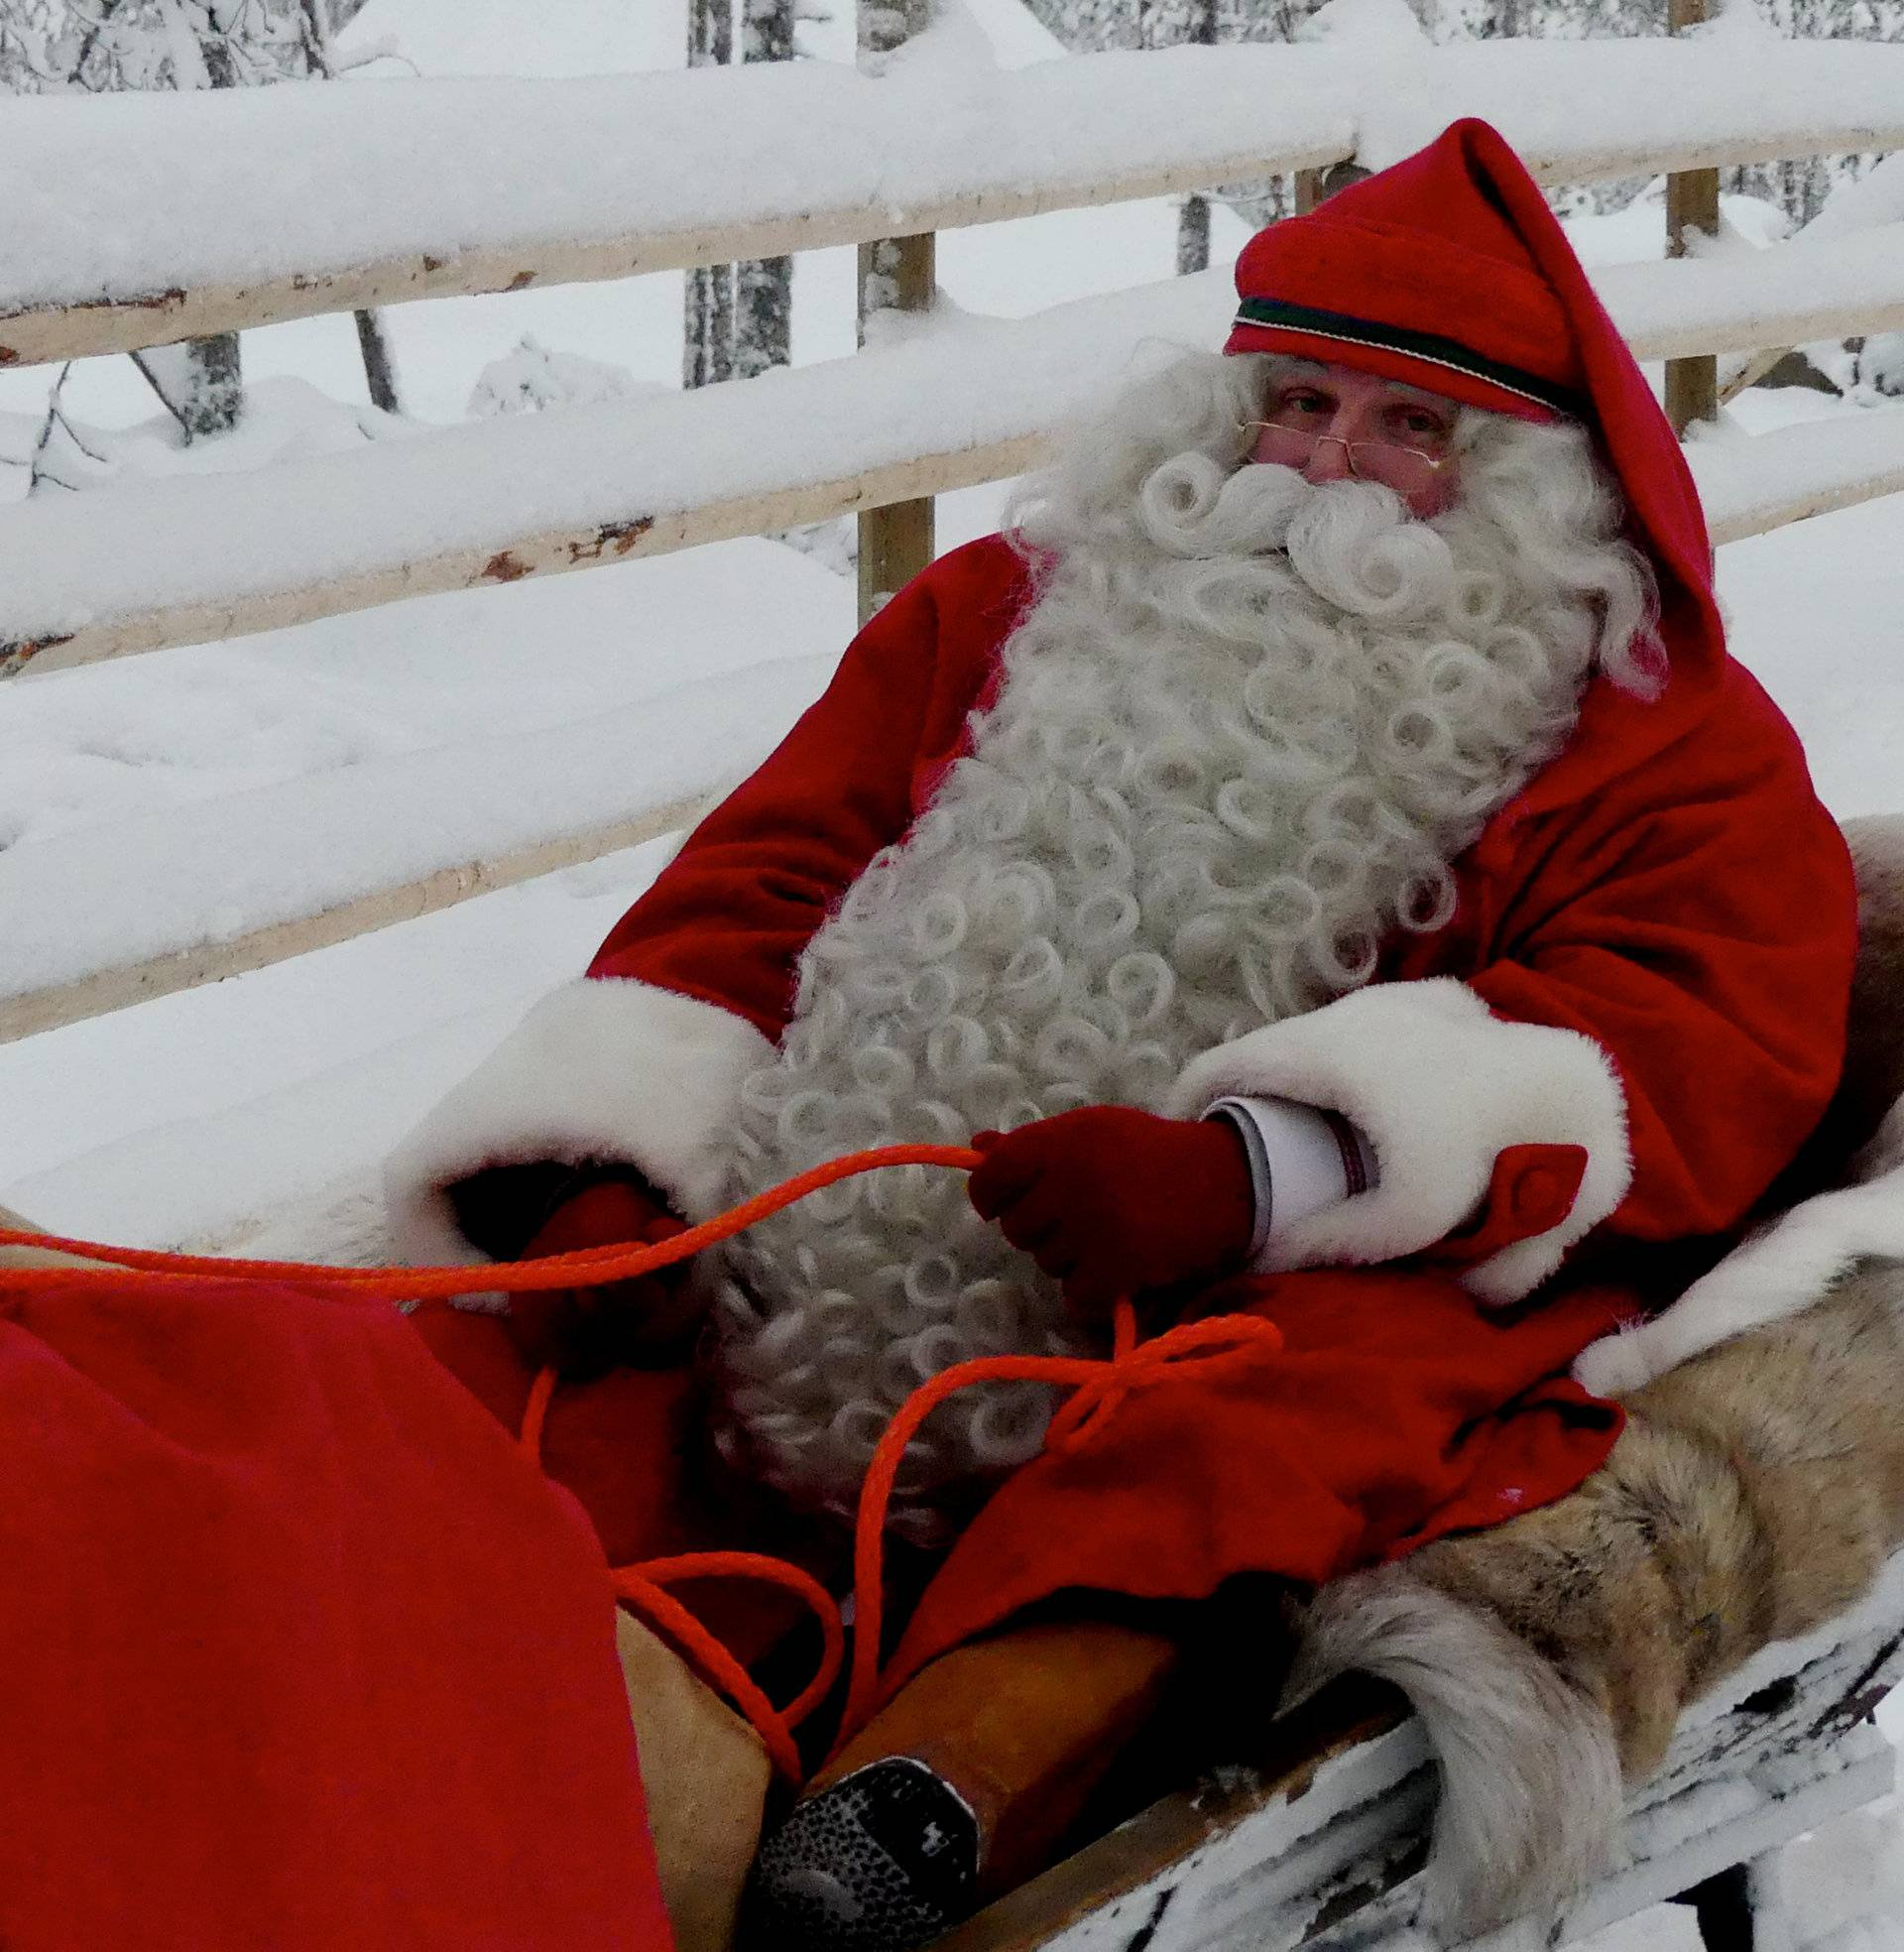 A man dressed as Santa Claus rides his sleigh near the Santa Claus Office located on the Arctic Circle near Rovaniemi